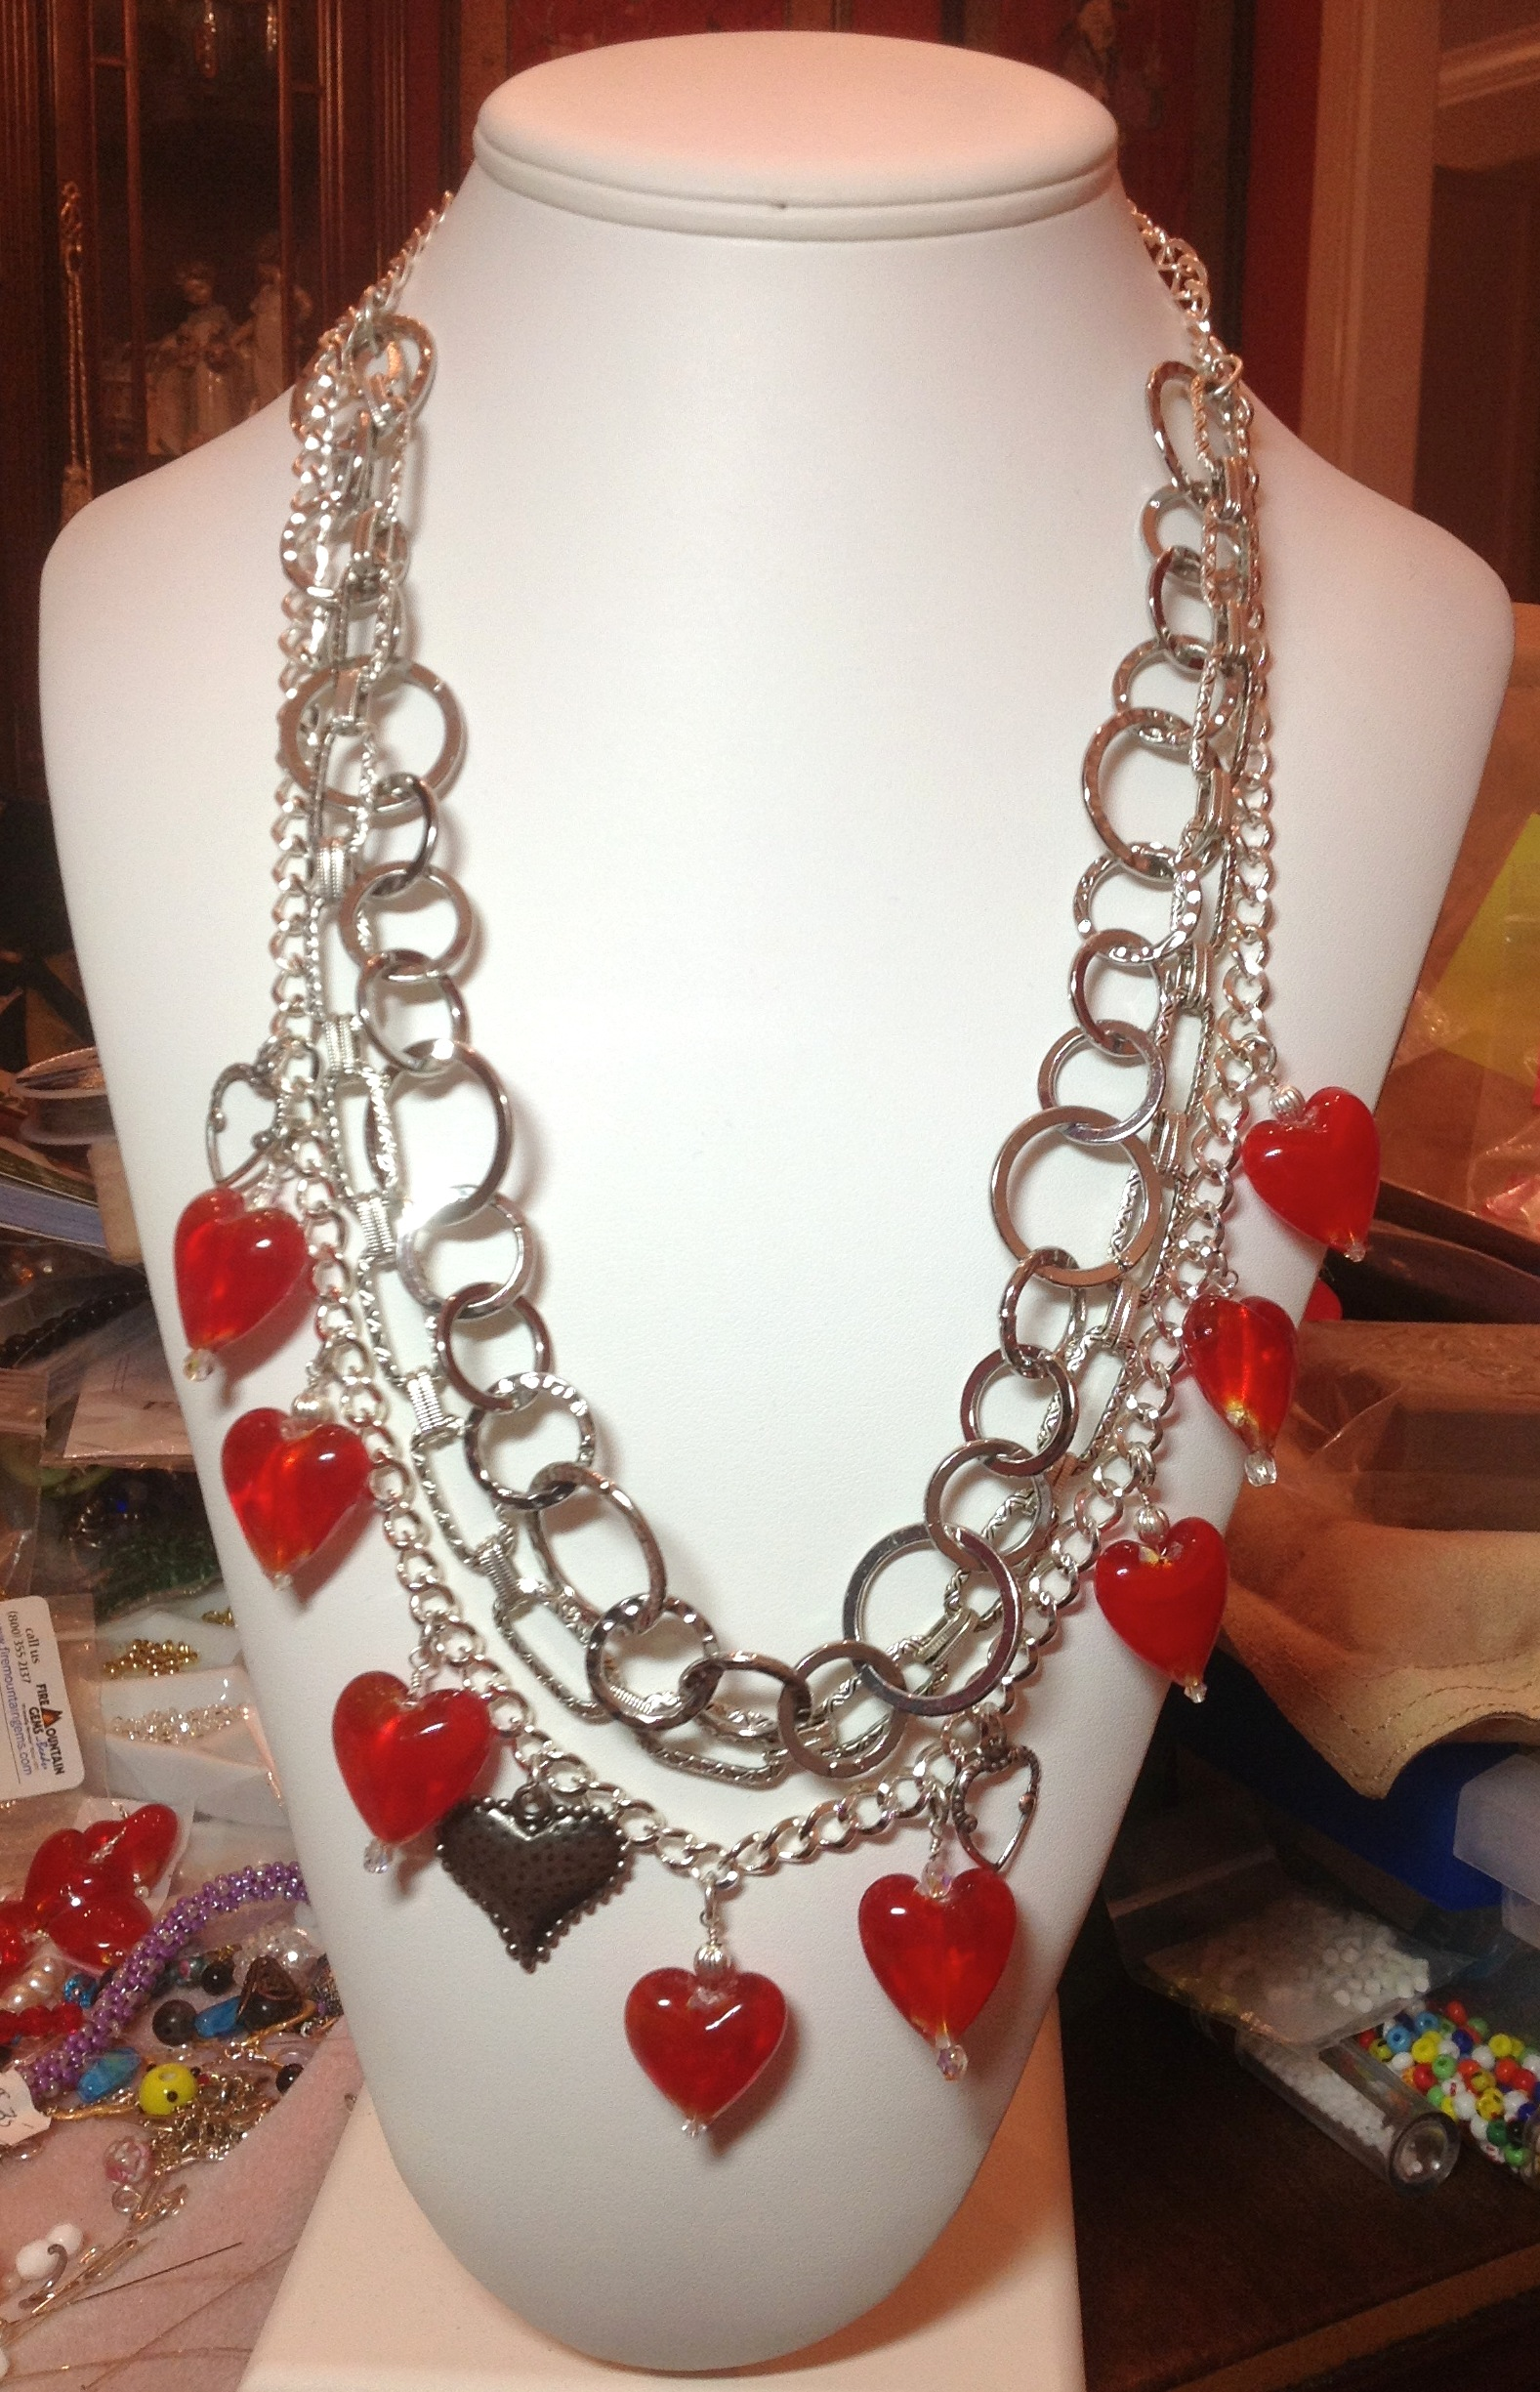 Glass Hearts on a Chain: Stepping Outside My Comfort Zone